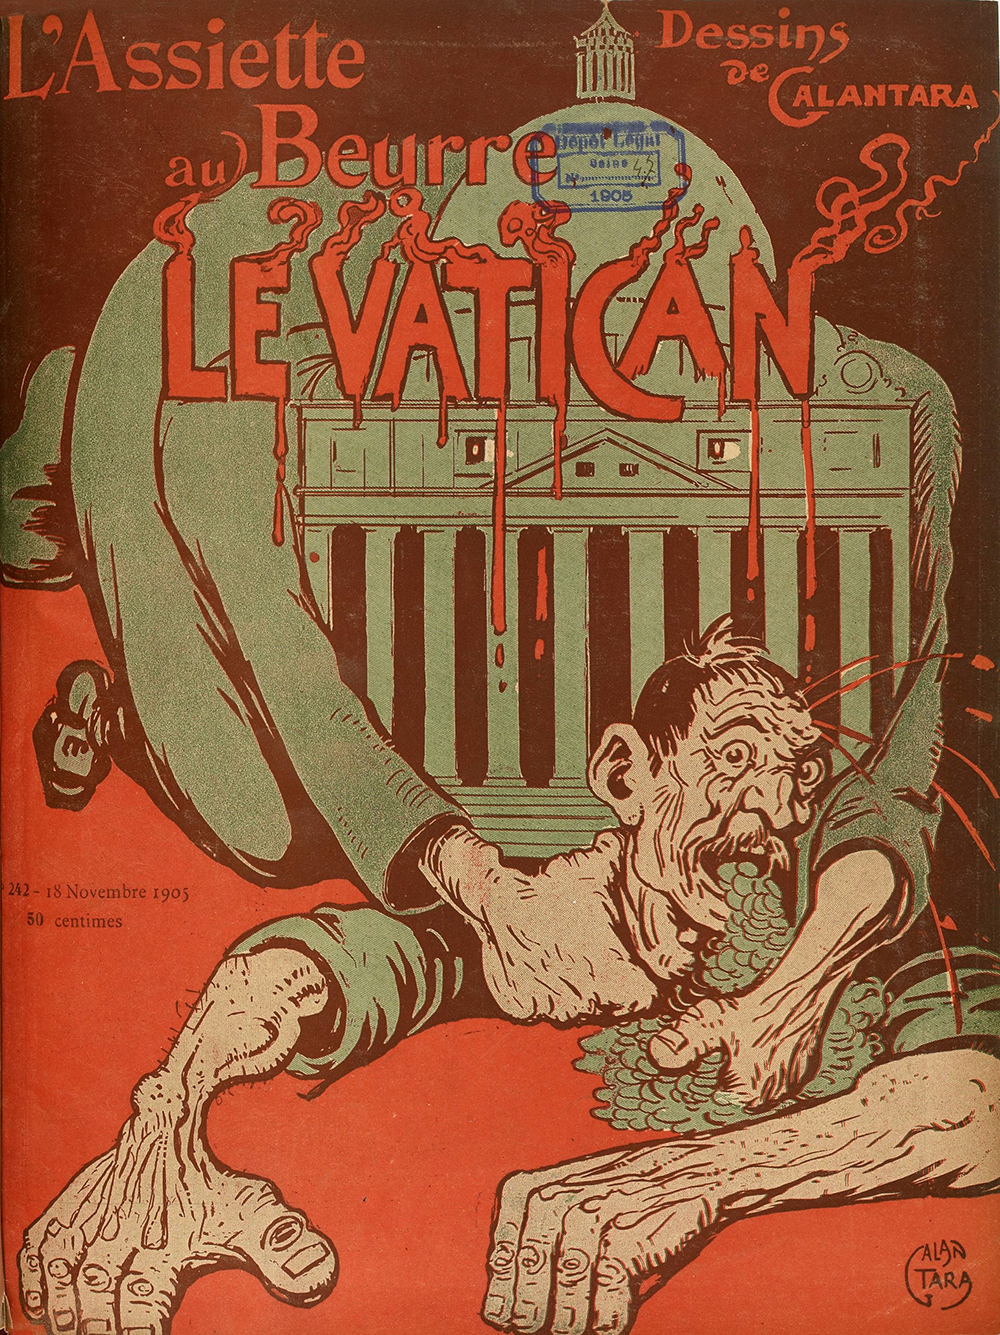 """Le Vatican,"" front page of L'Assiette au Beurre, by Gabriele Galantara, November 18, 1905. Wikimedia Commons."